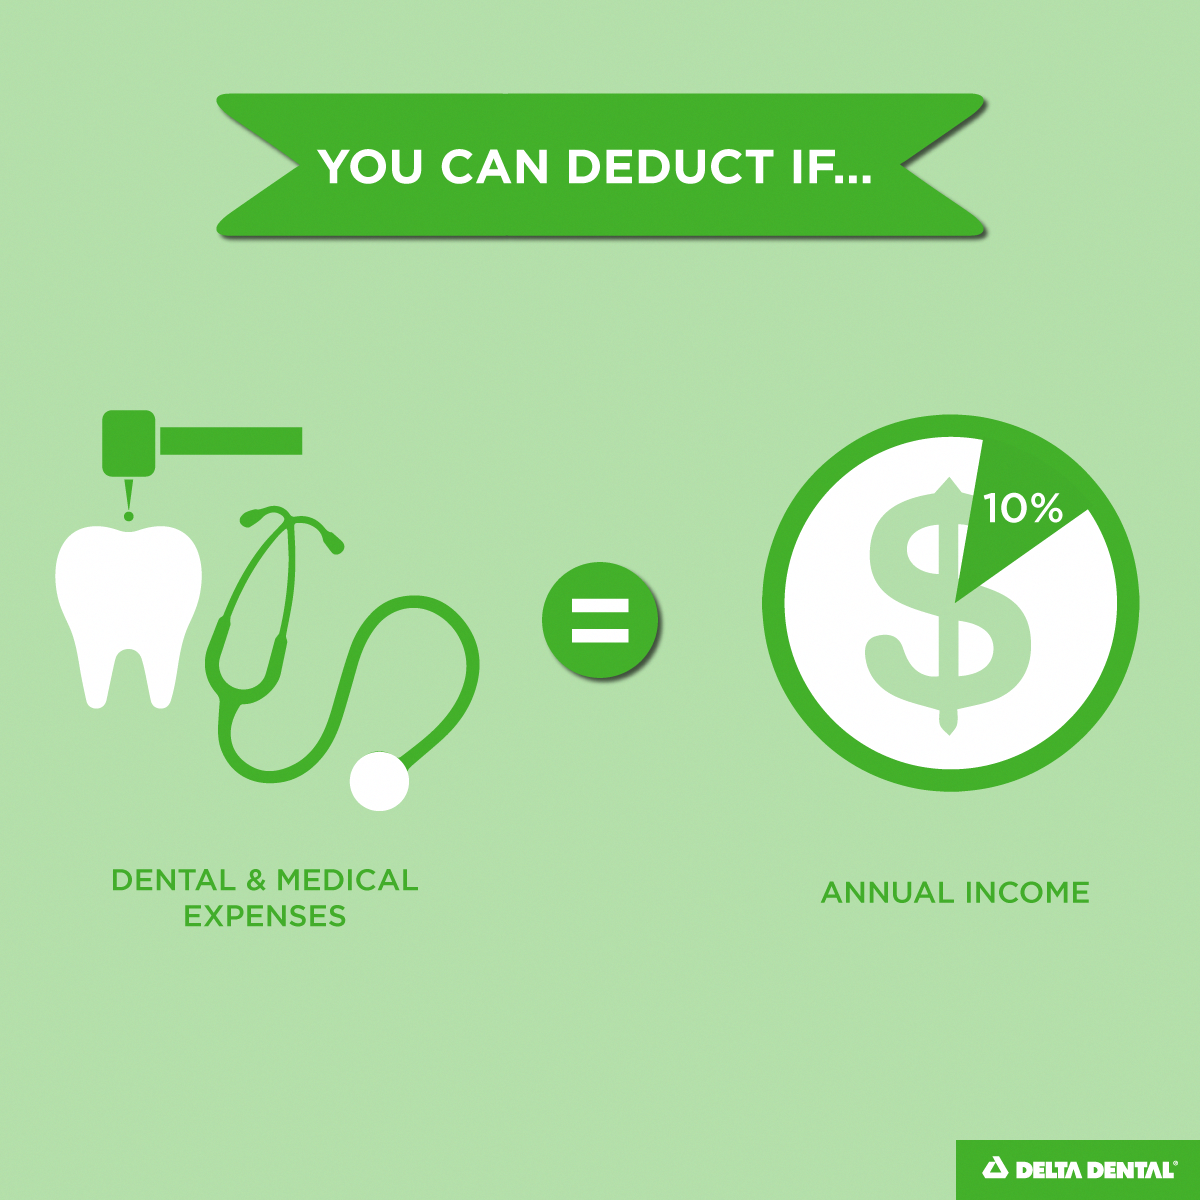 Last Minute Tax Tip: You Can Deduct Medical And Dental